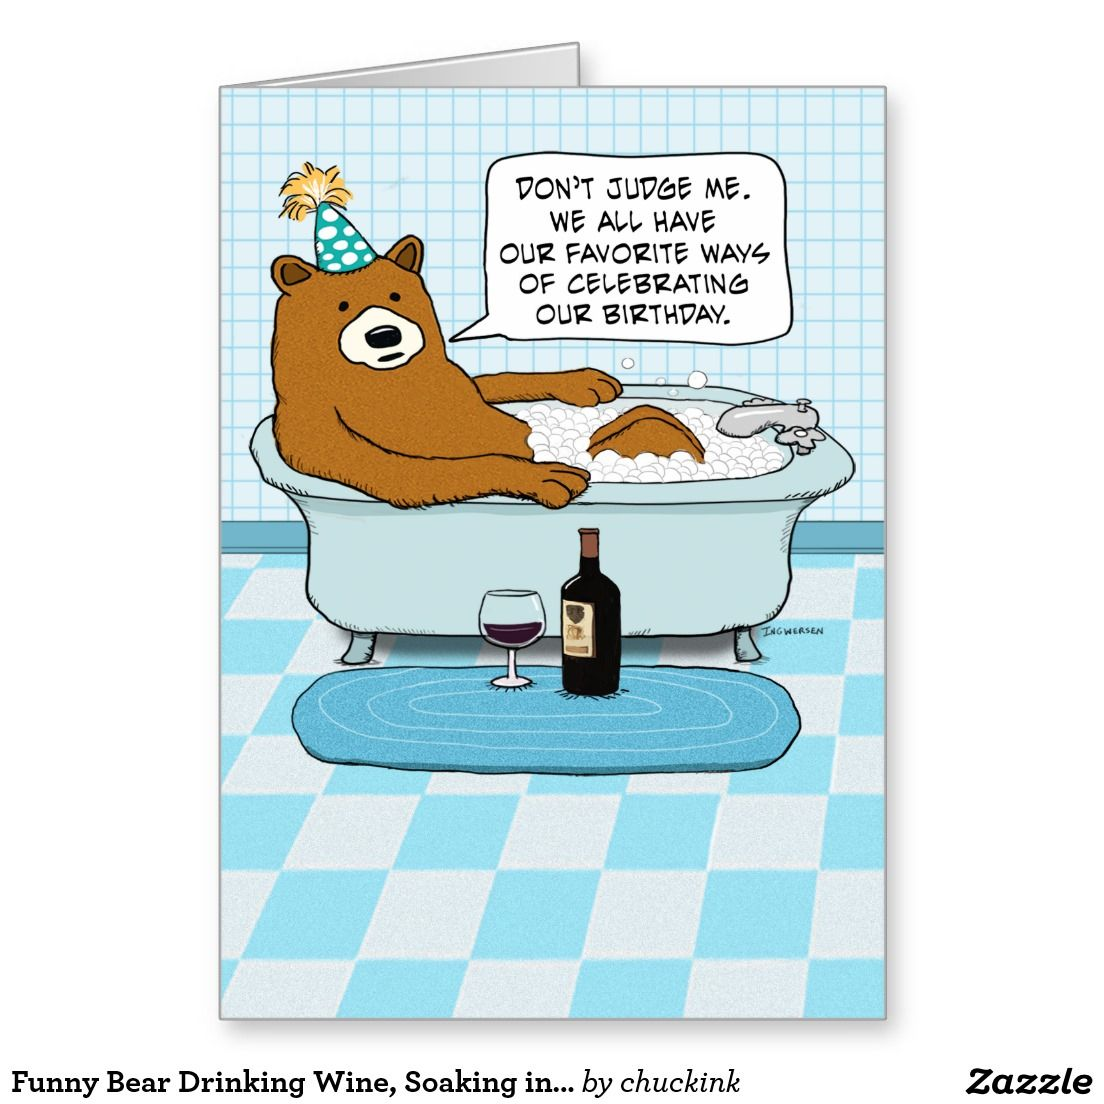 Funny Vine Photo Birthday Cards: Funny Bear Drinking Wine, Soaking In Tub Birthday Card